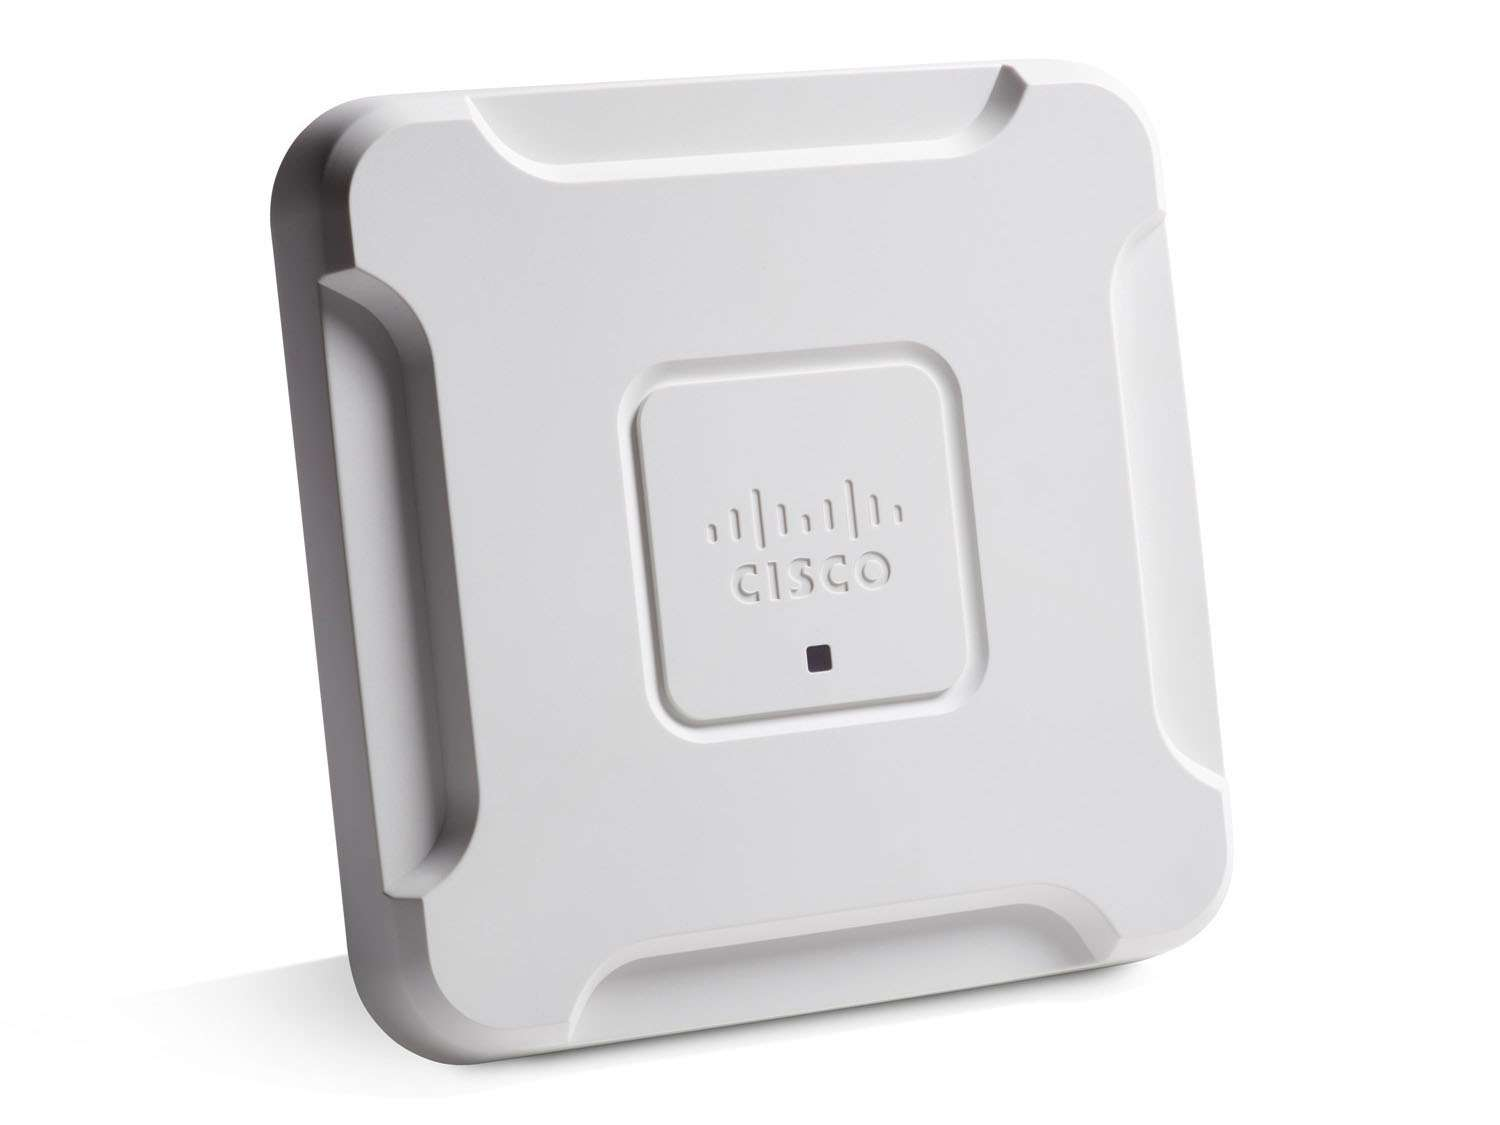 Wireless Cisco WAP581